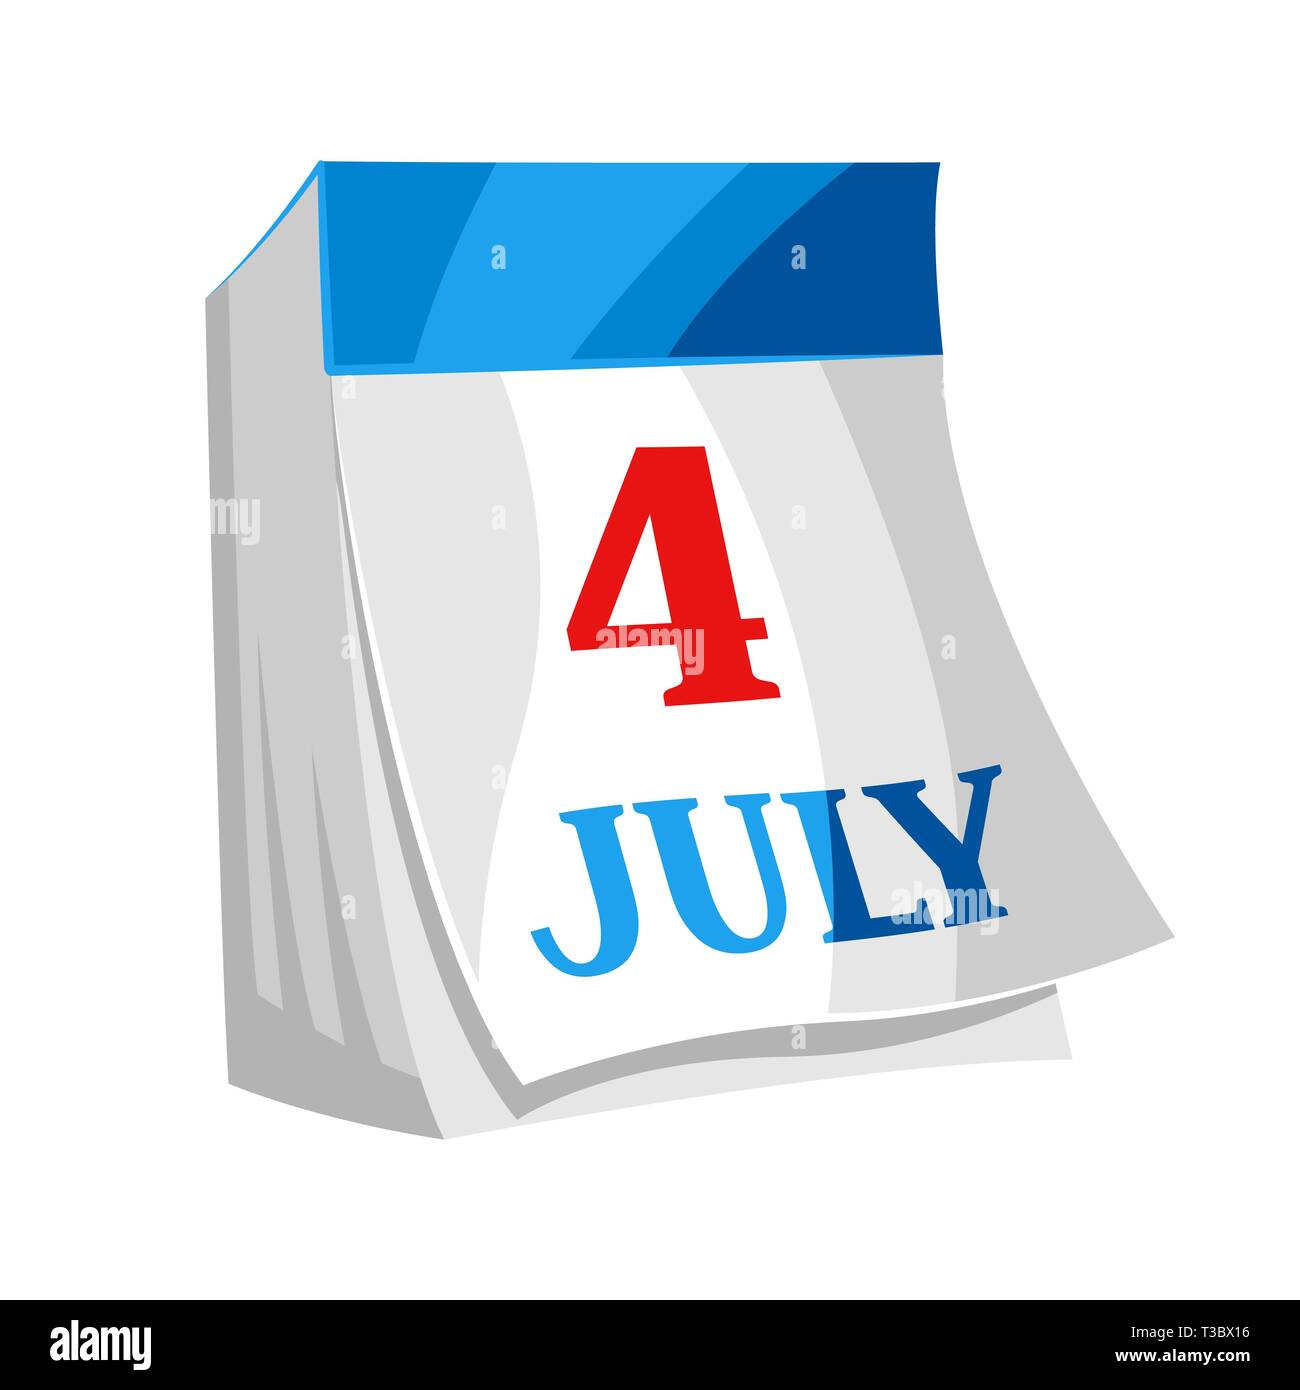 Fourth of July Independence Day tear-off calendar. Isolated on white background. - Stock Image